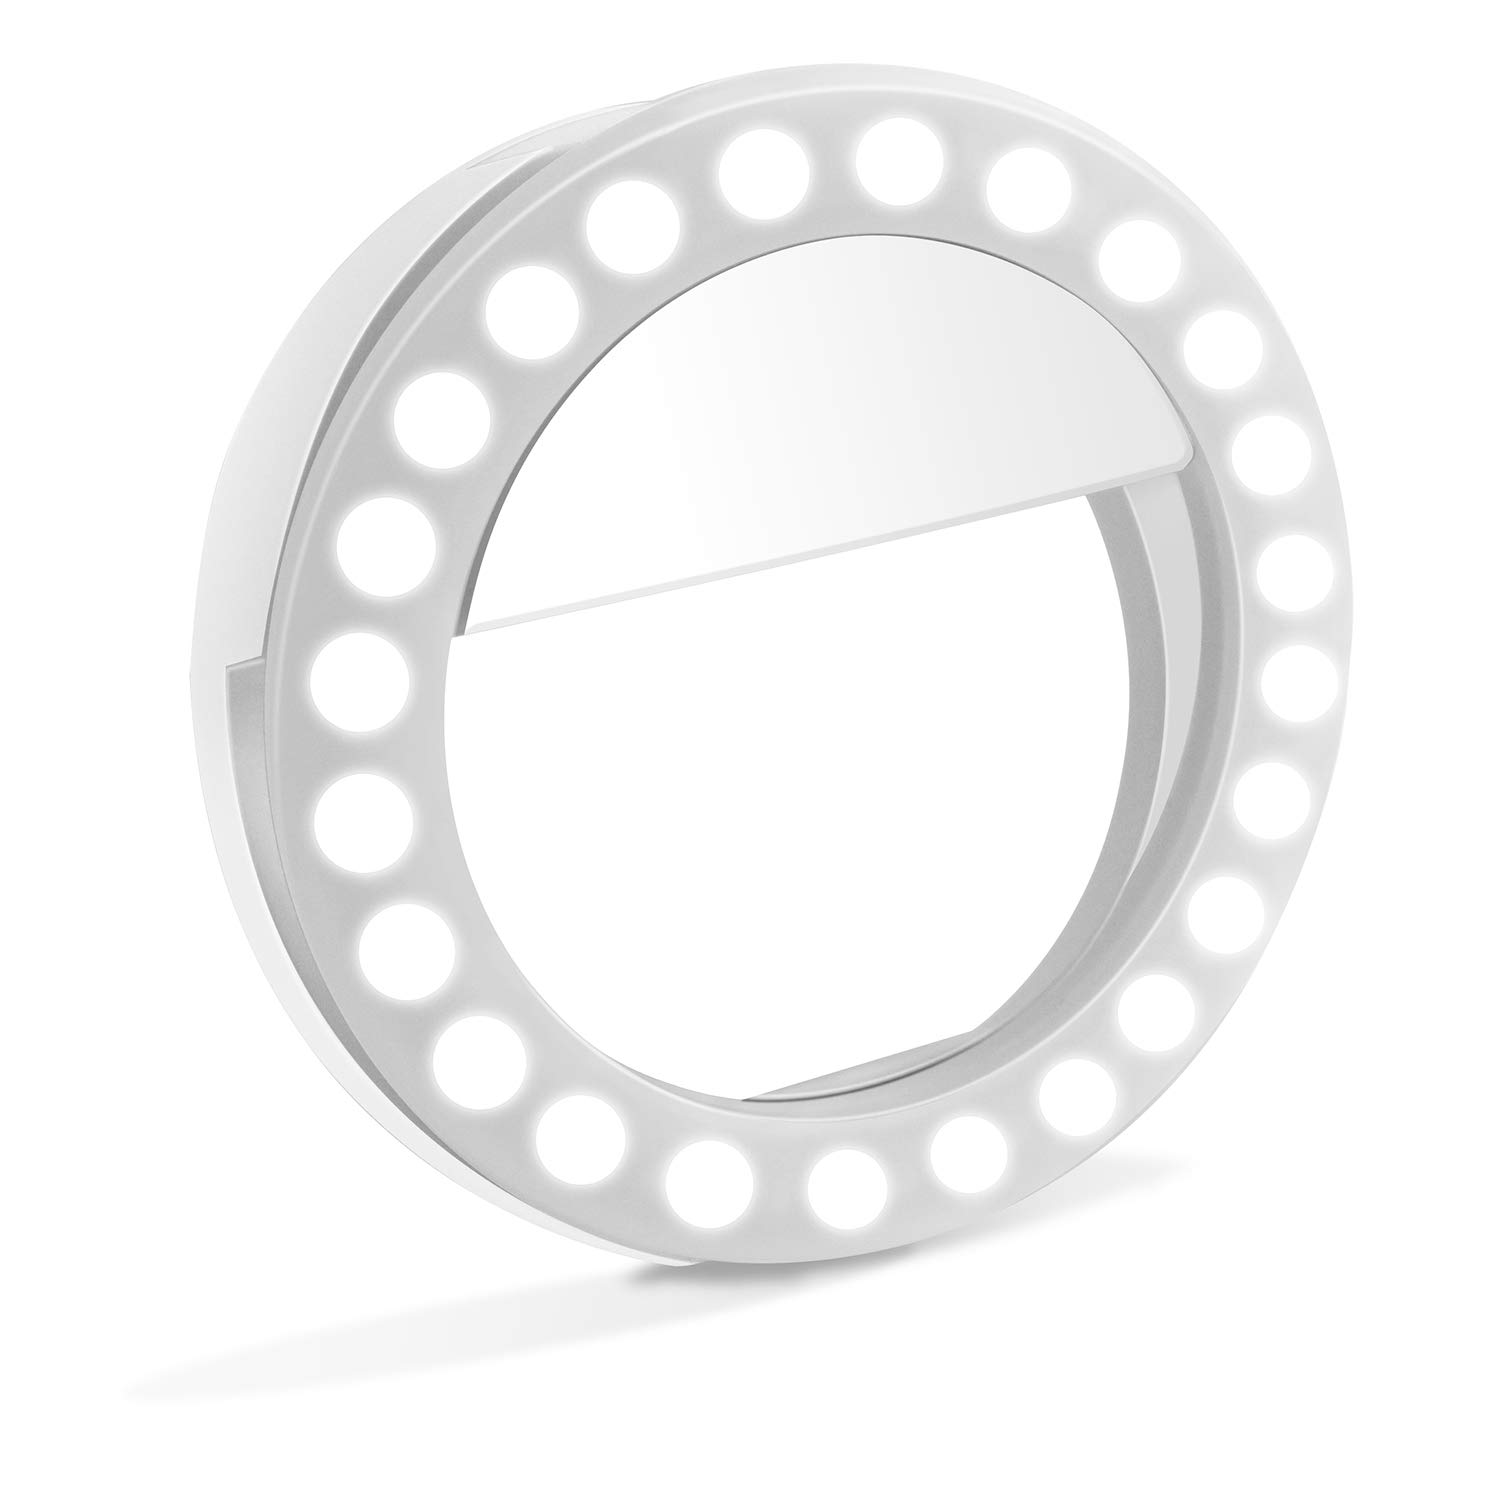 Selfie Ring Light, XINBAOHONG Rechargeable Portable Clip-on Selfie Fill Light with 36 LED for Smart Phone Photography, Camera Video, Girl Makes up (White, 48LED)